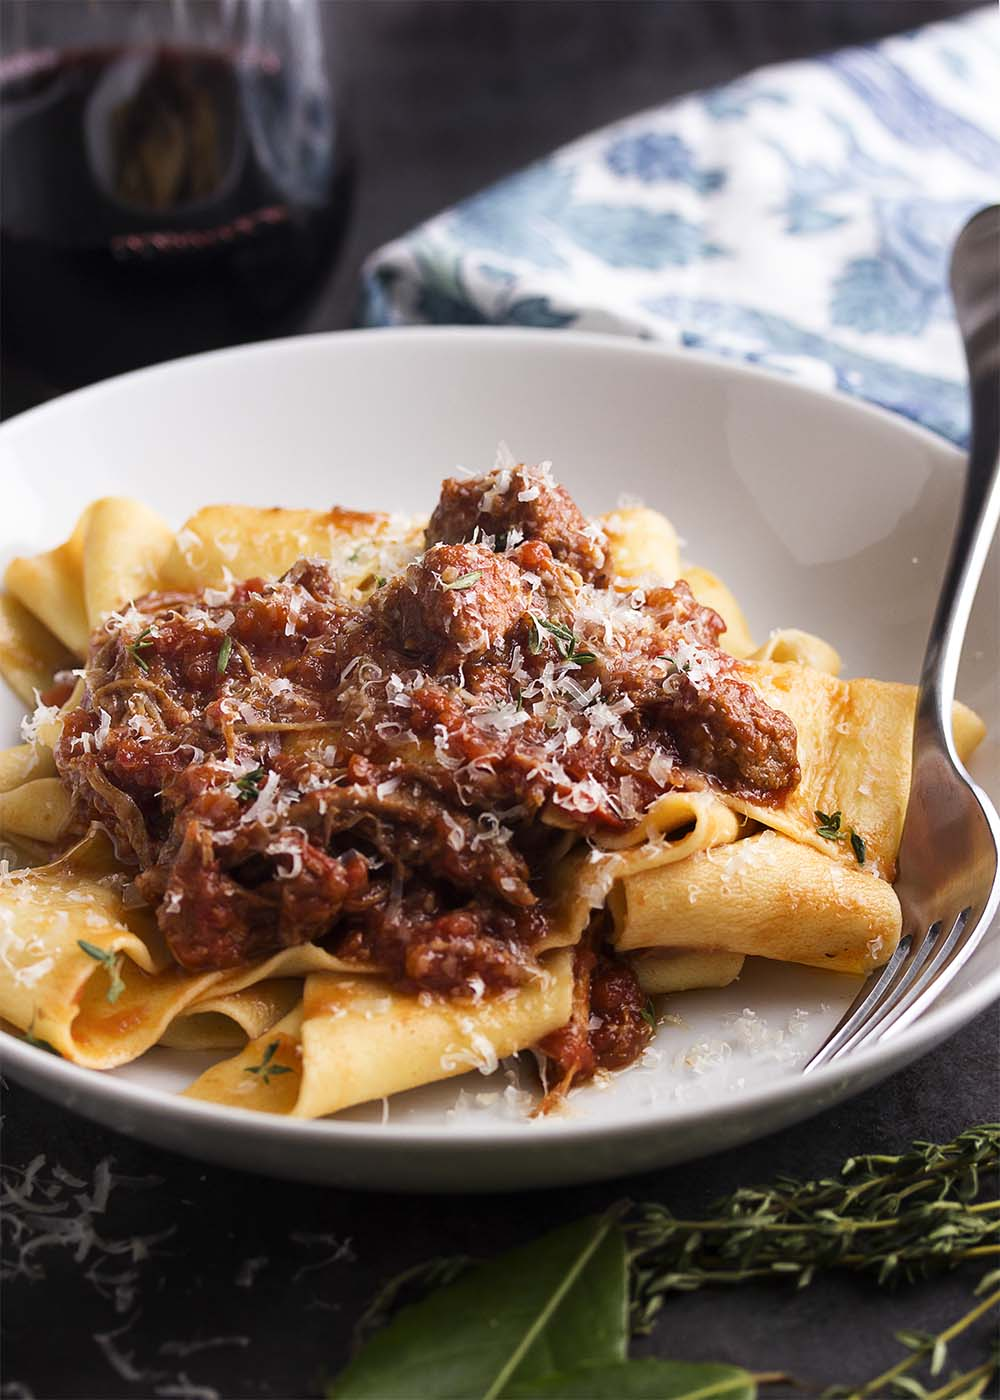 Italian comfort food of tomato, braised sausage, and pork shoulder ragu simmering on the stove is the perfect way to spend a chilly day. This pork ragu is easily doubled and freezes well. | justalittlebitofbacon.com